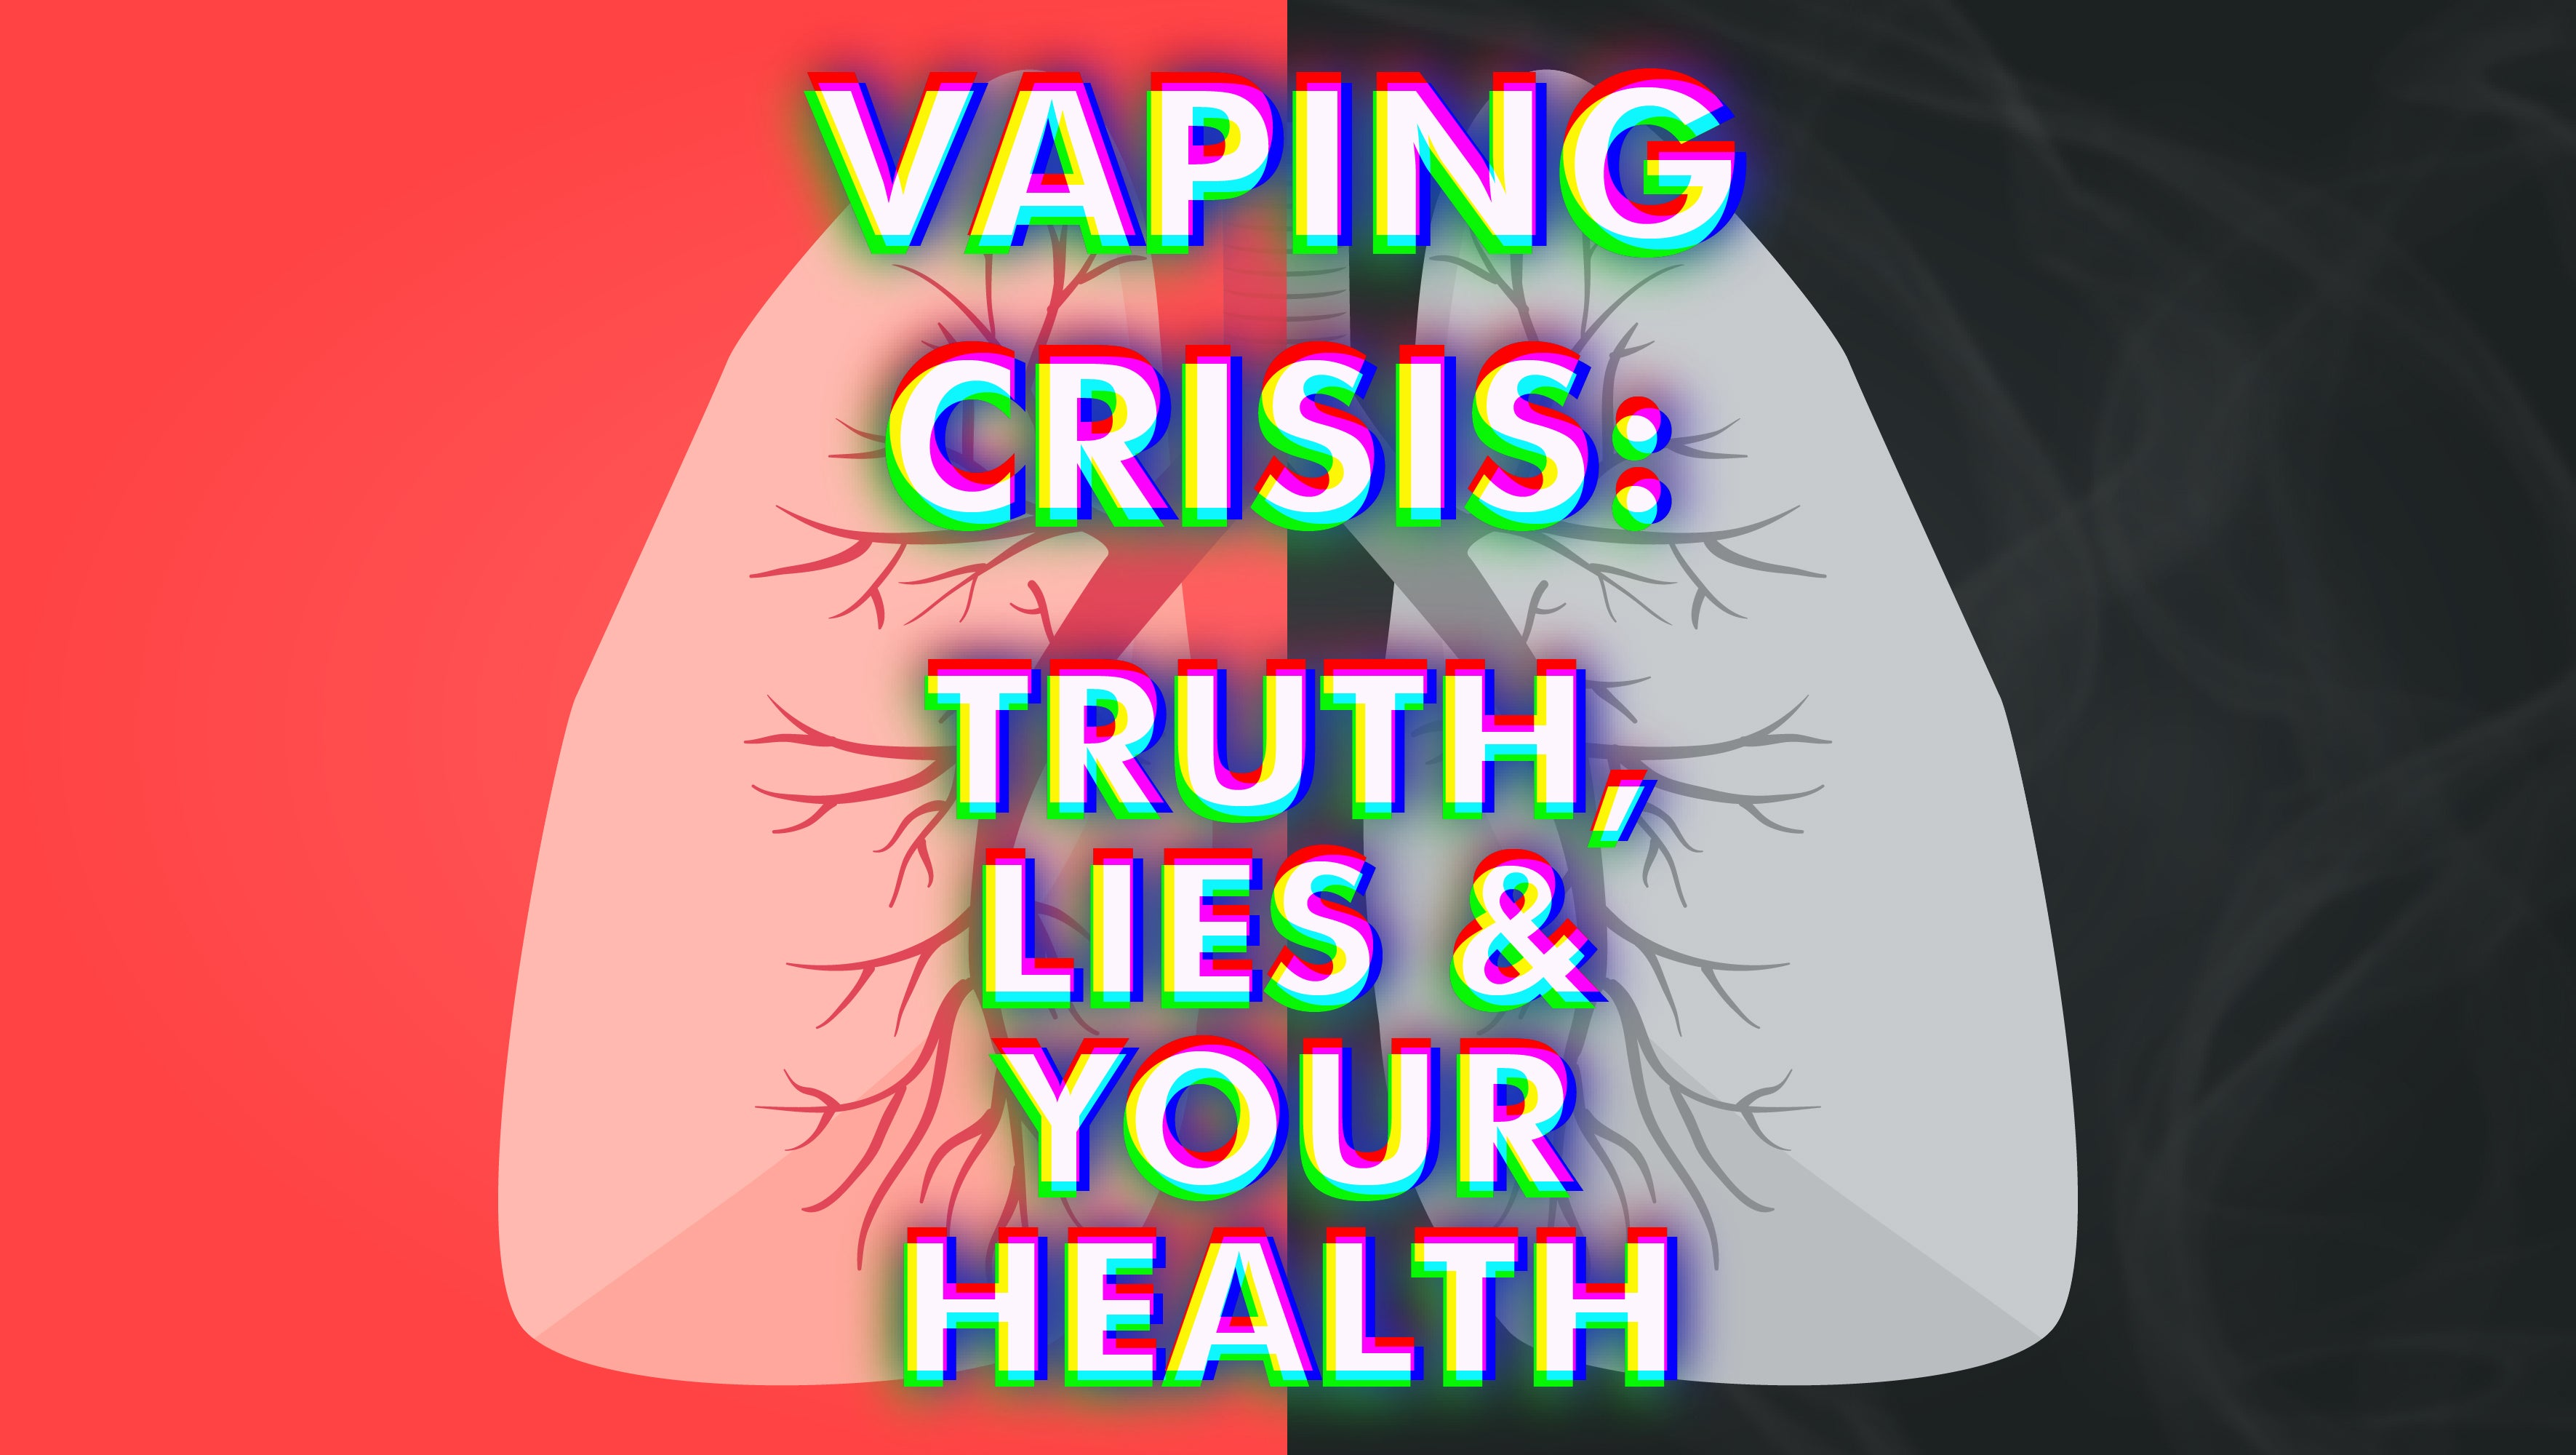 Vaping Crisis: Truth, Lies & Your Health